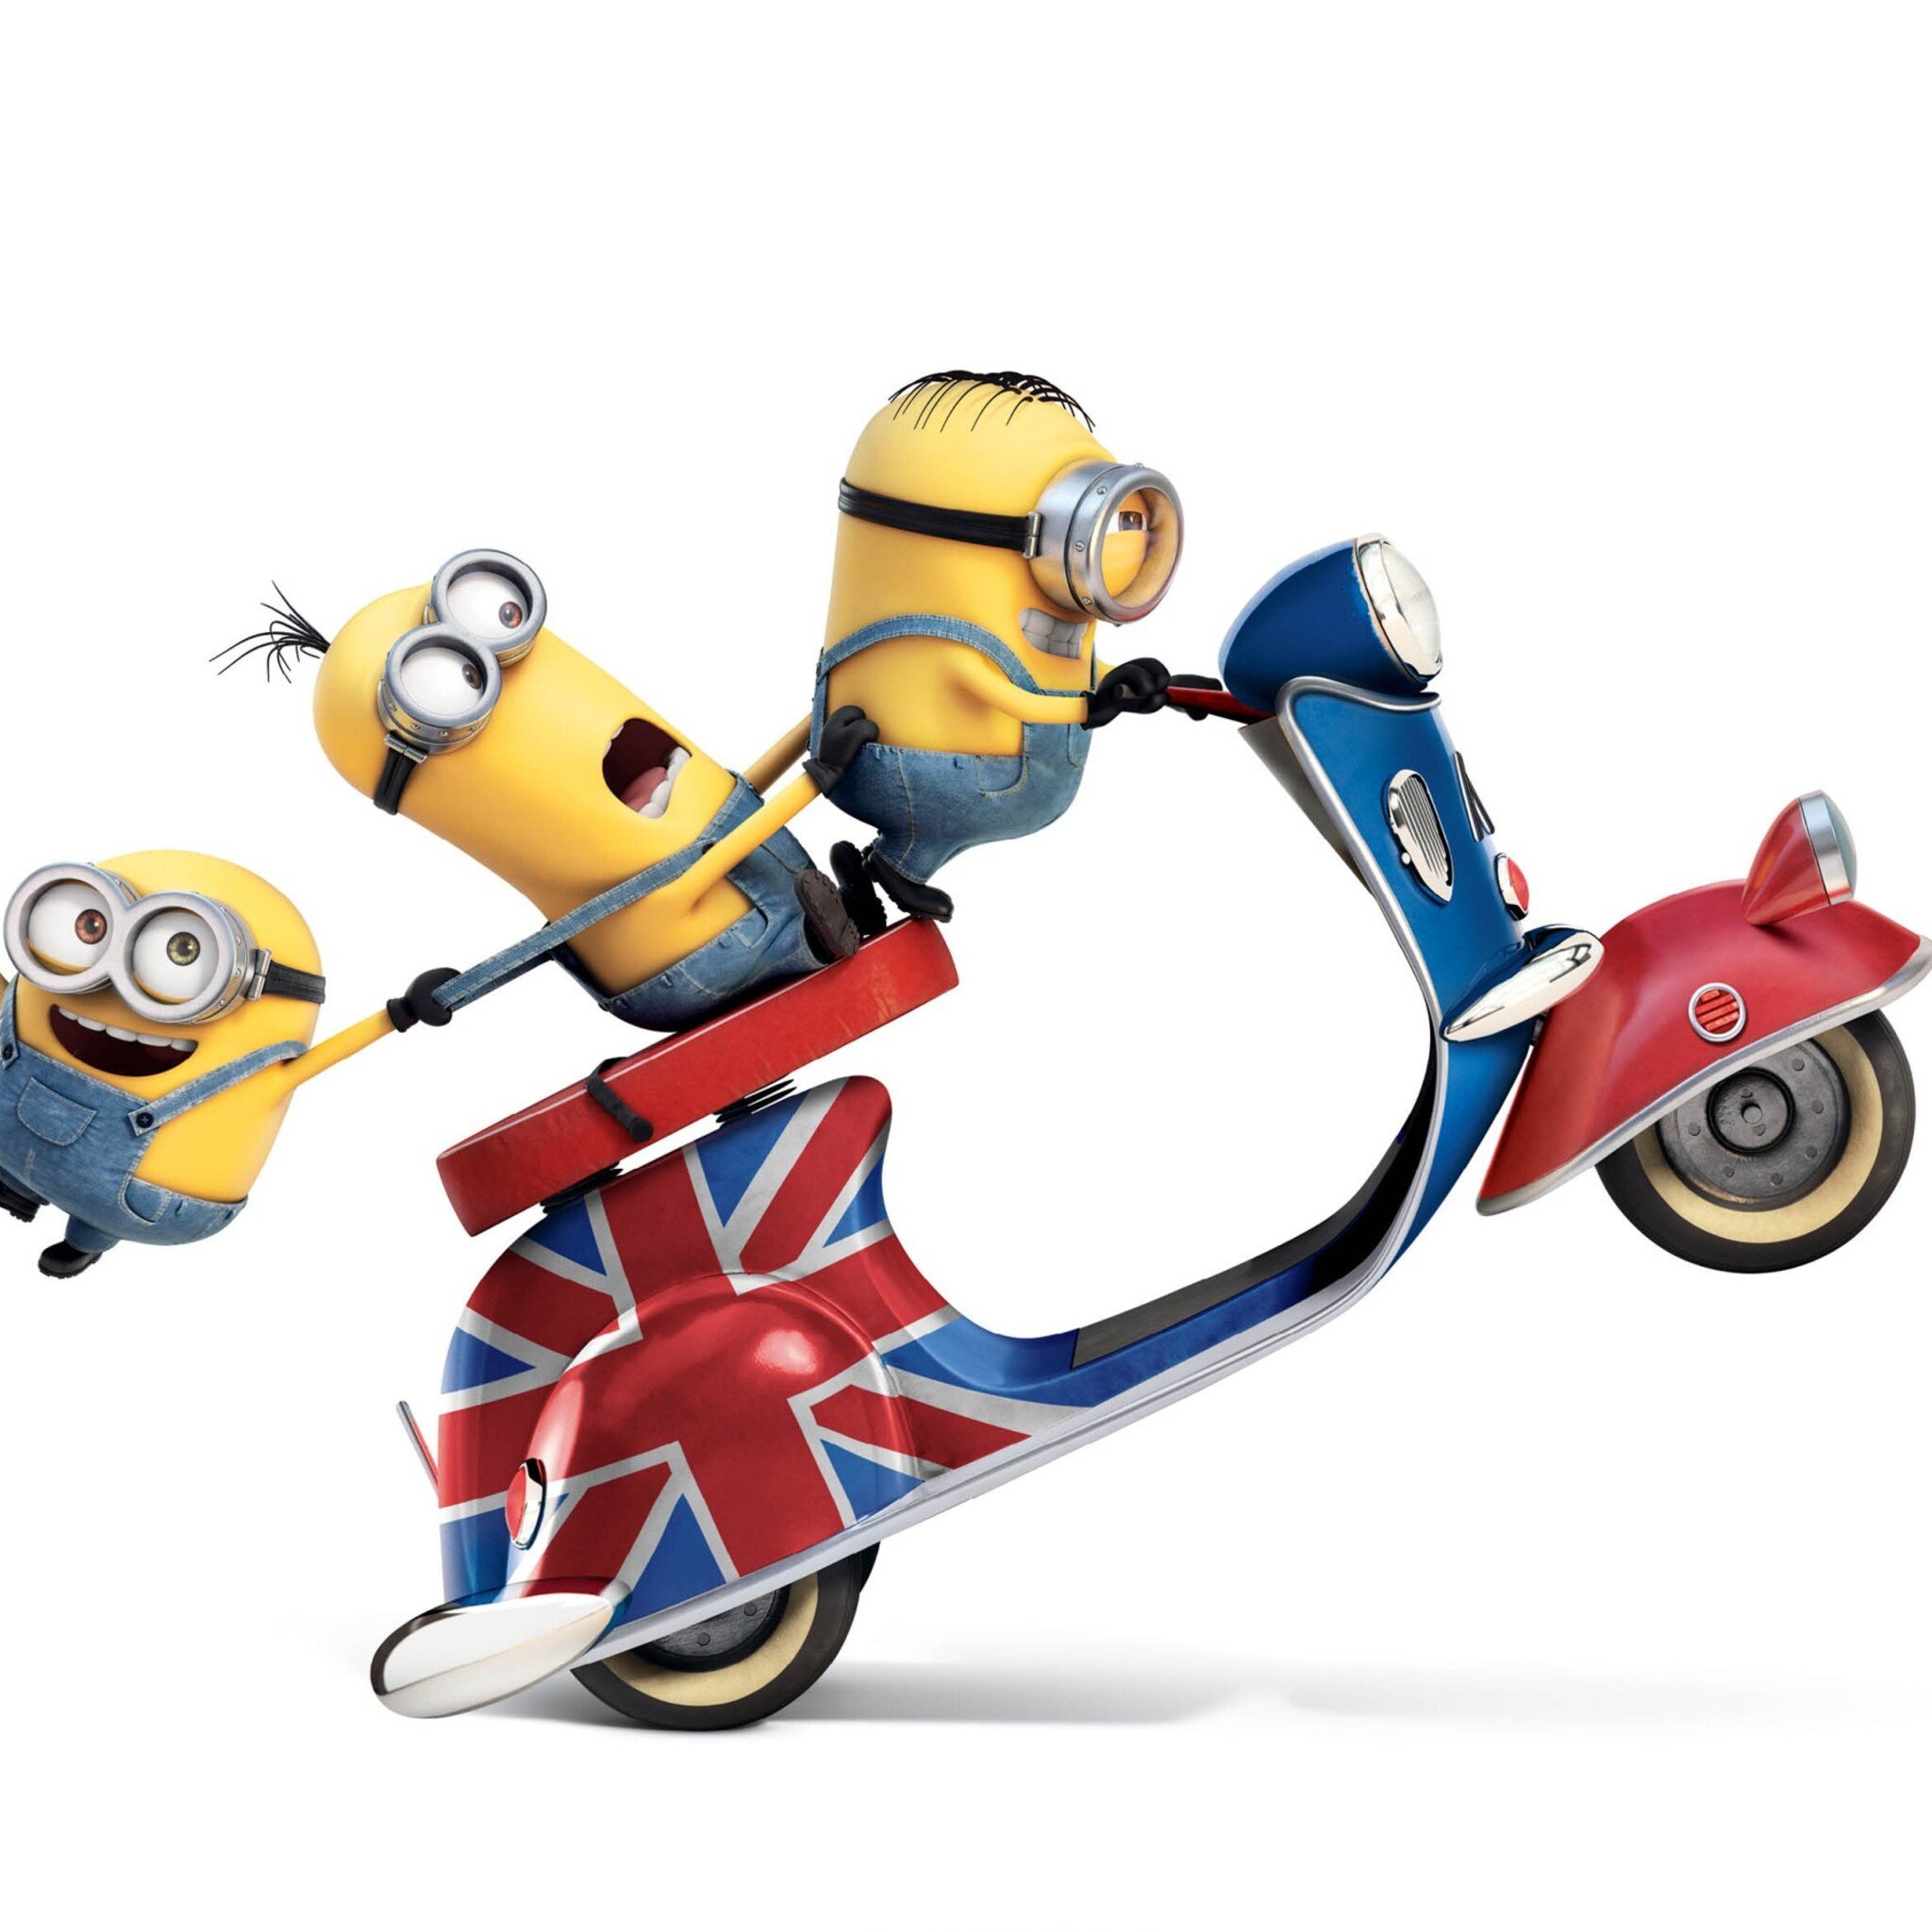 2048x2048 Minions Funny 3 Ipad Air HD 4k Wallpapers ...